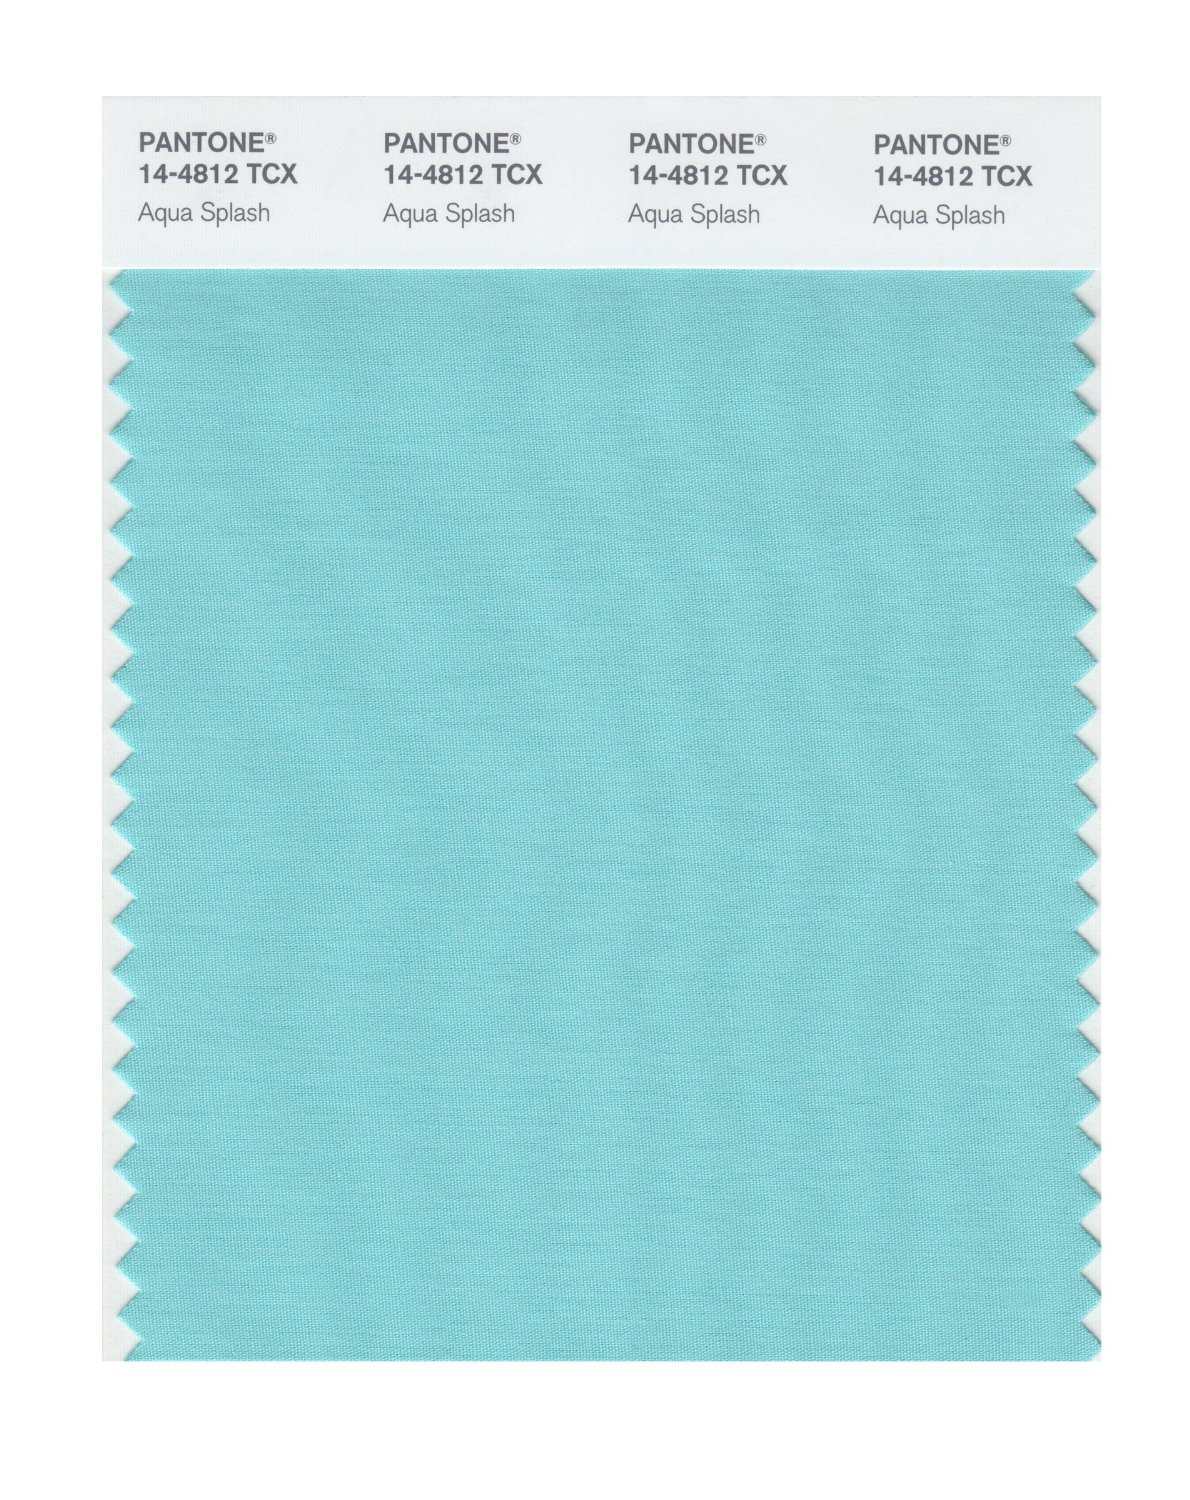 Pantone Smart Swatch 14-4812 Aqua Splash